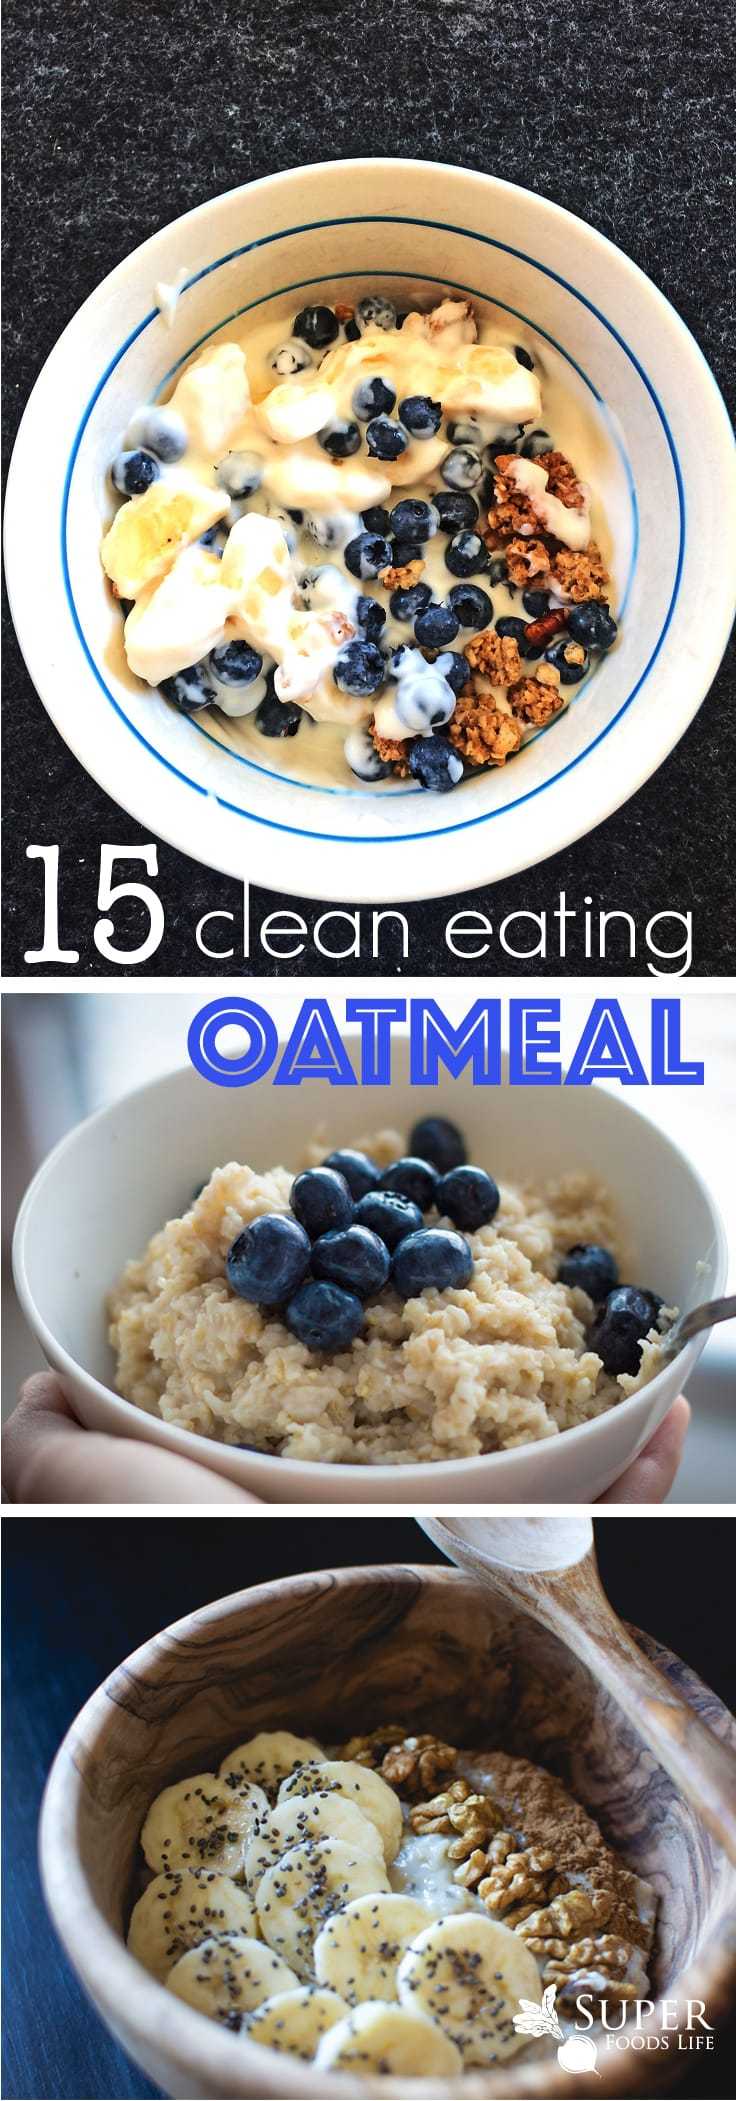 I love oatmeal! It's one of my all time favorite breakfast meals. But oatmeal is not just for breakfast. In fact, there are some really amazing clean eating oatmeal recipes... for lunch and dinner!!